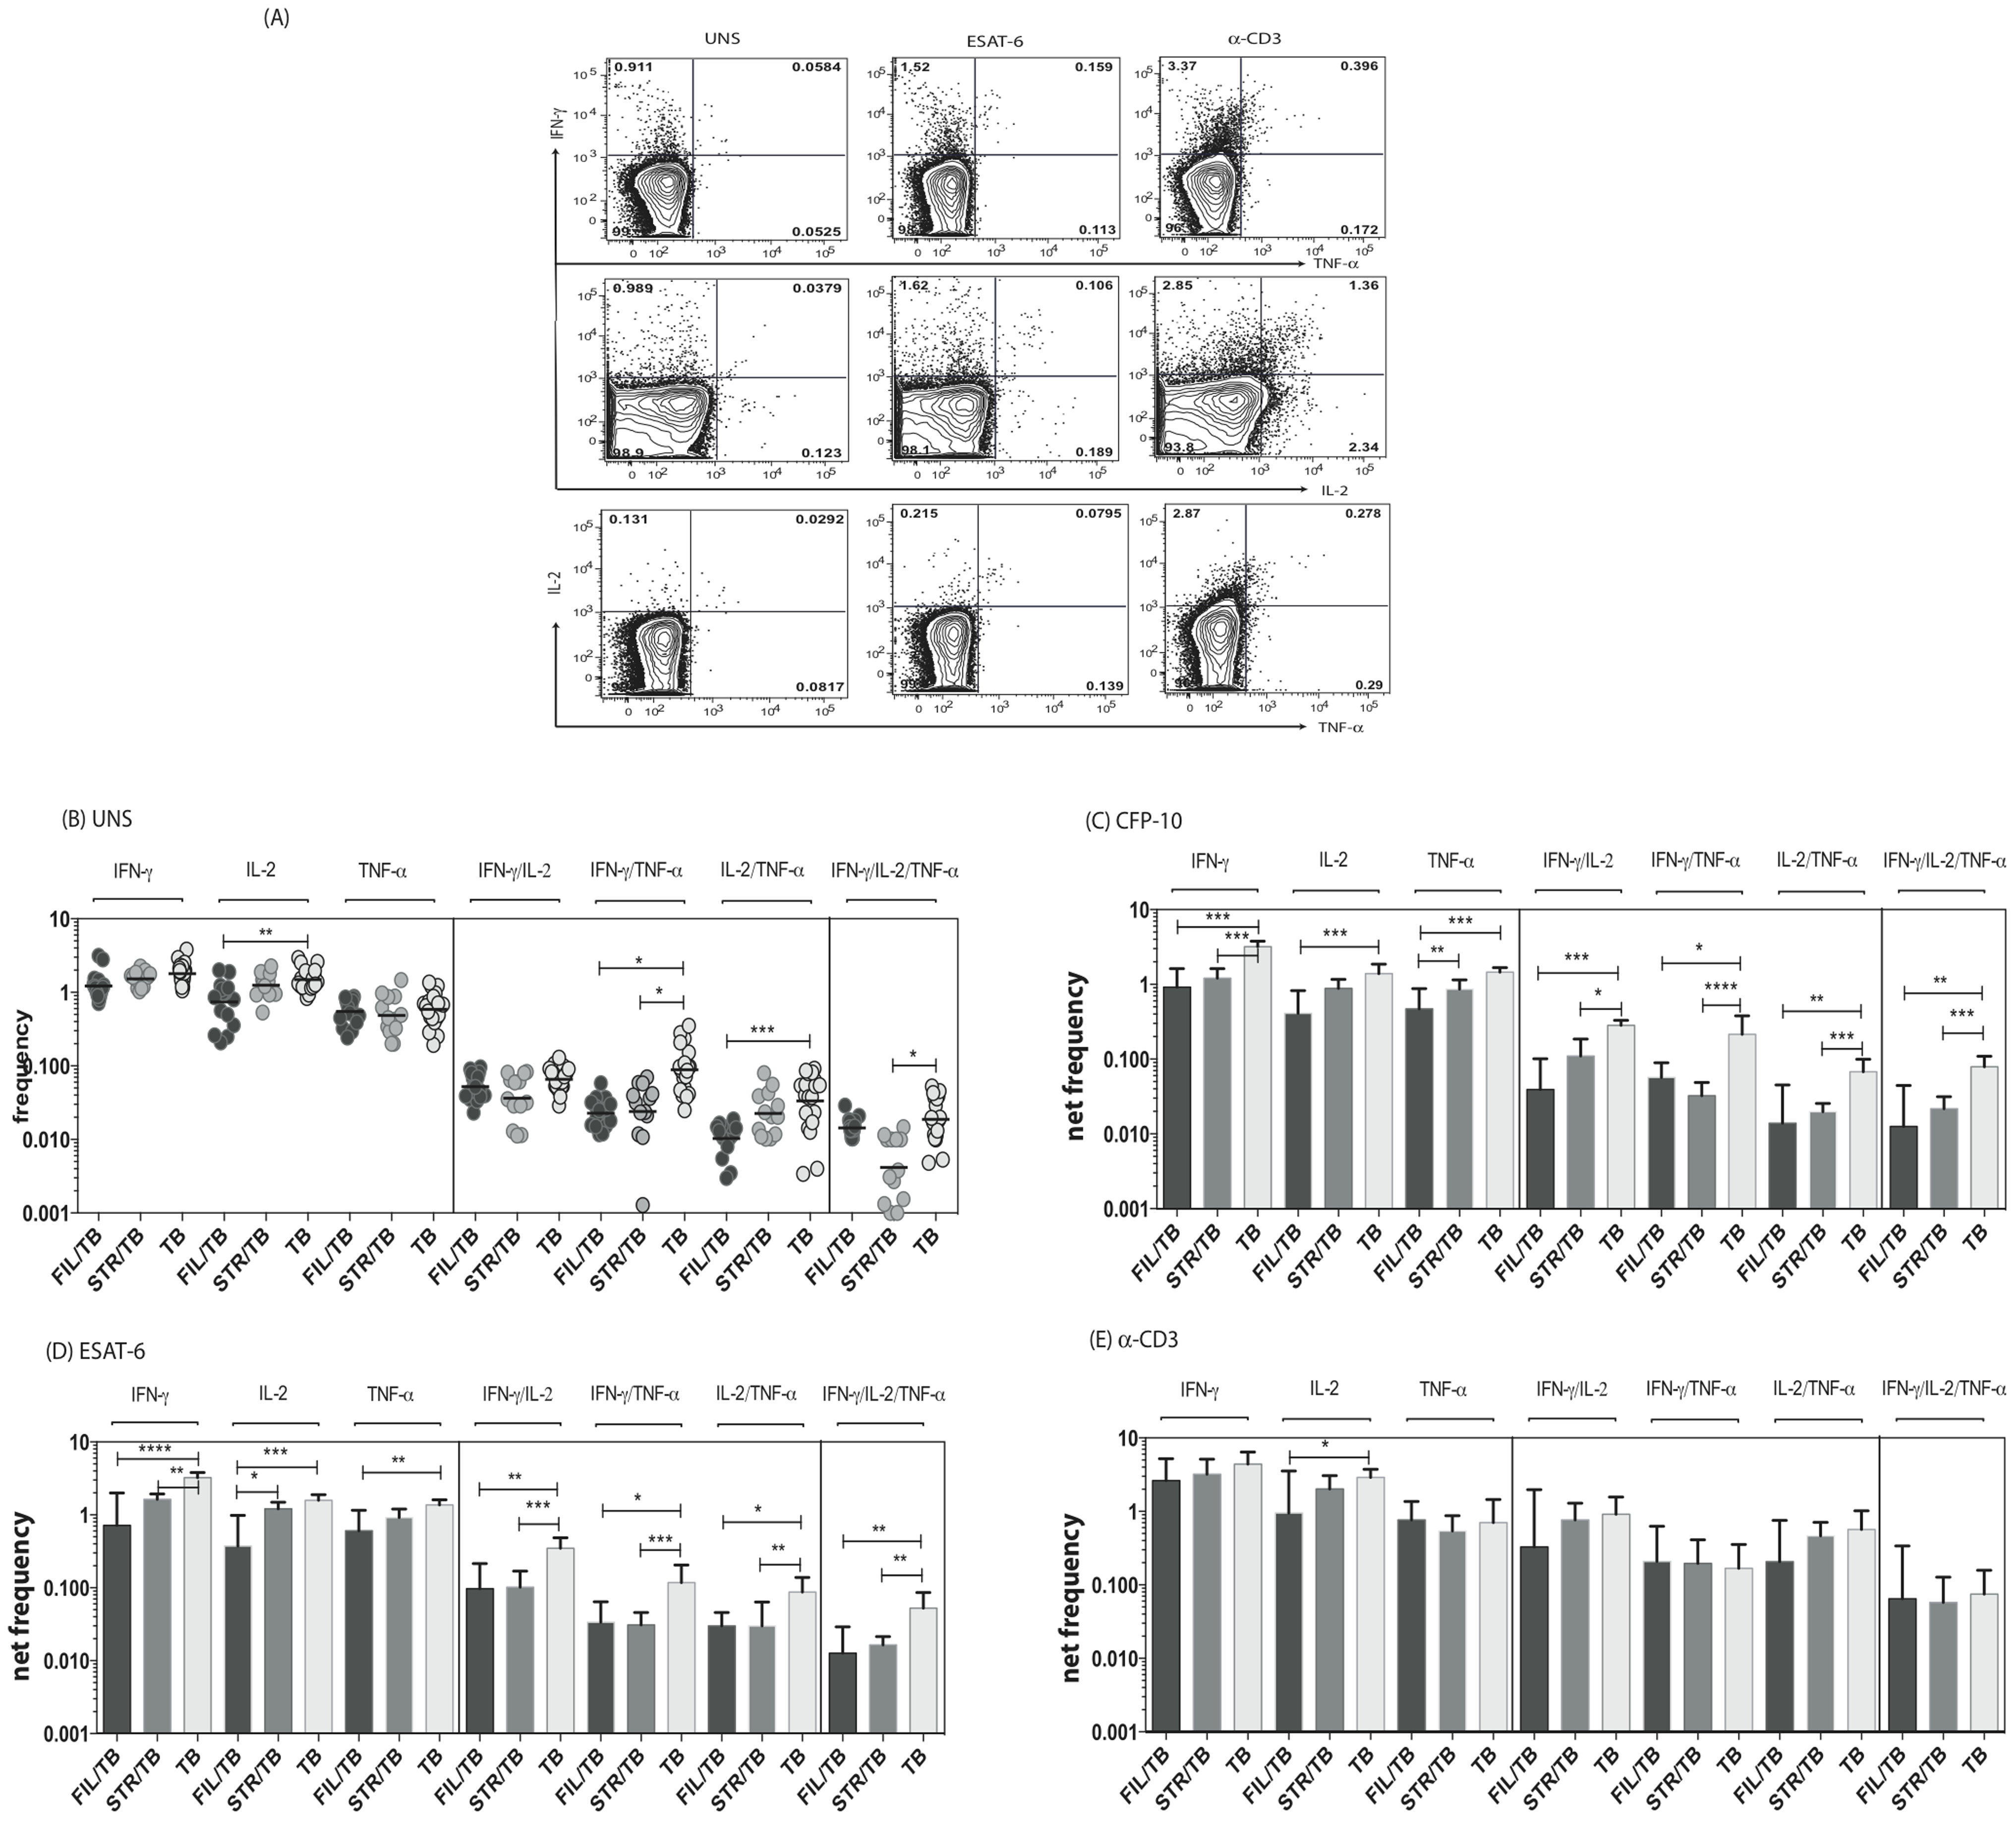 Helminth infections are associated with decreased frequencies of mono- and multifunctional mycobacterial antigen-specific CD4<sup>+</sup> Th1 cells in active TB.